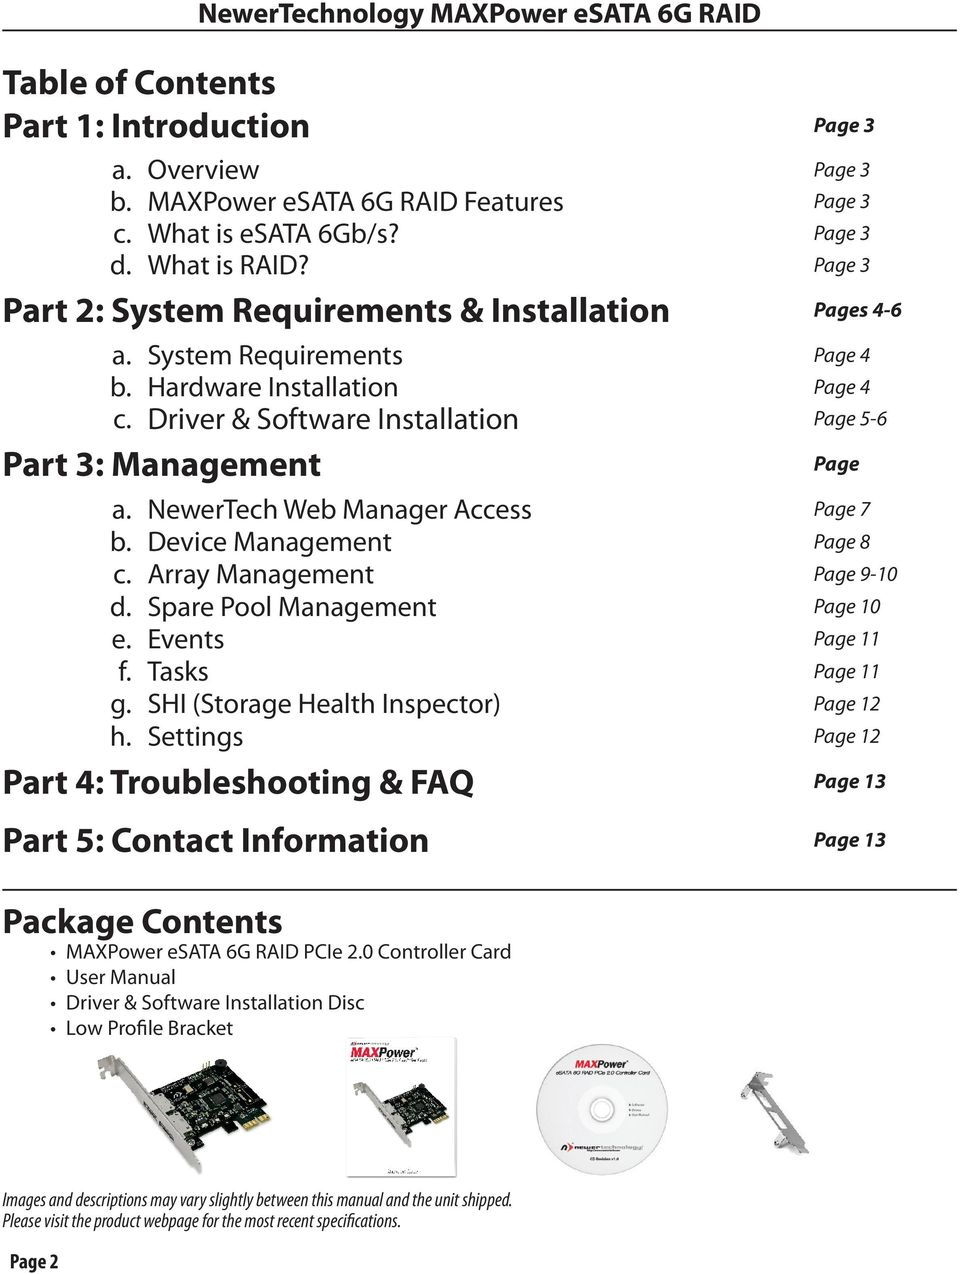 NewerTech Web Manager Access Page 7 b. Device Management Page 8 c. Array Management Page 9-10 d. Spare Pool Management Page 10 e. Events Page 11 f. Tasks Page 11 g.